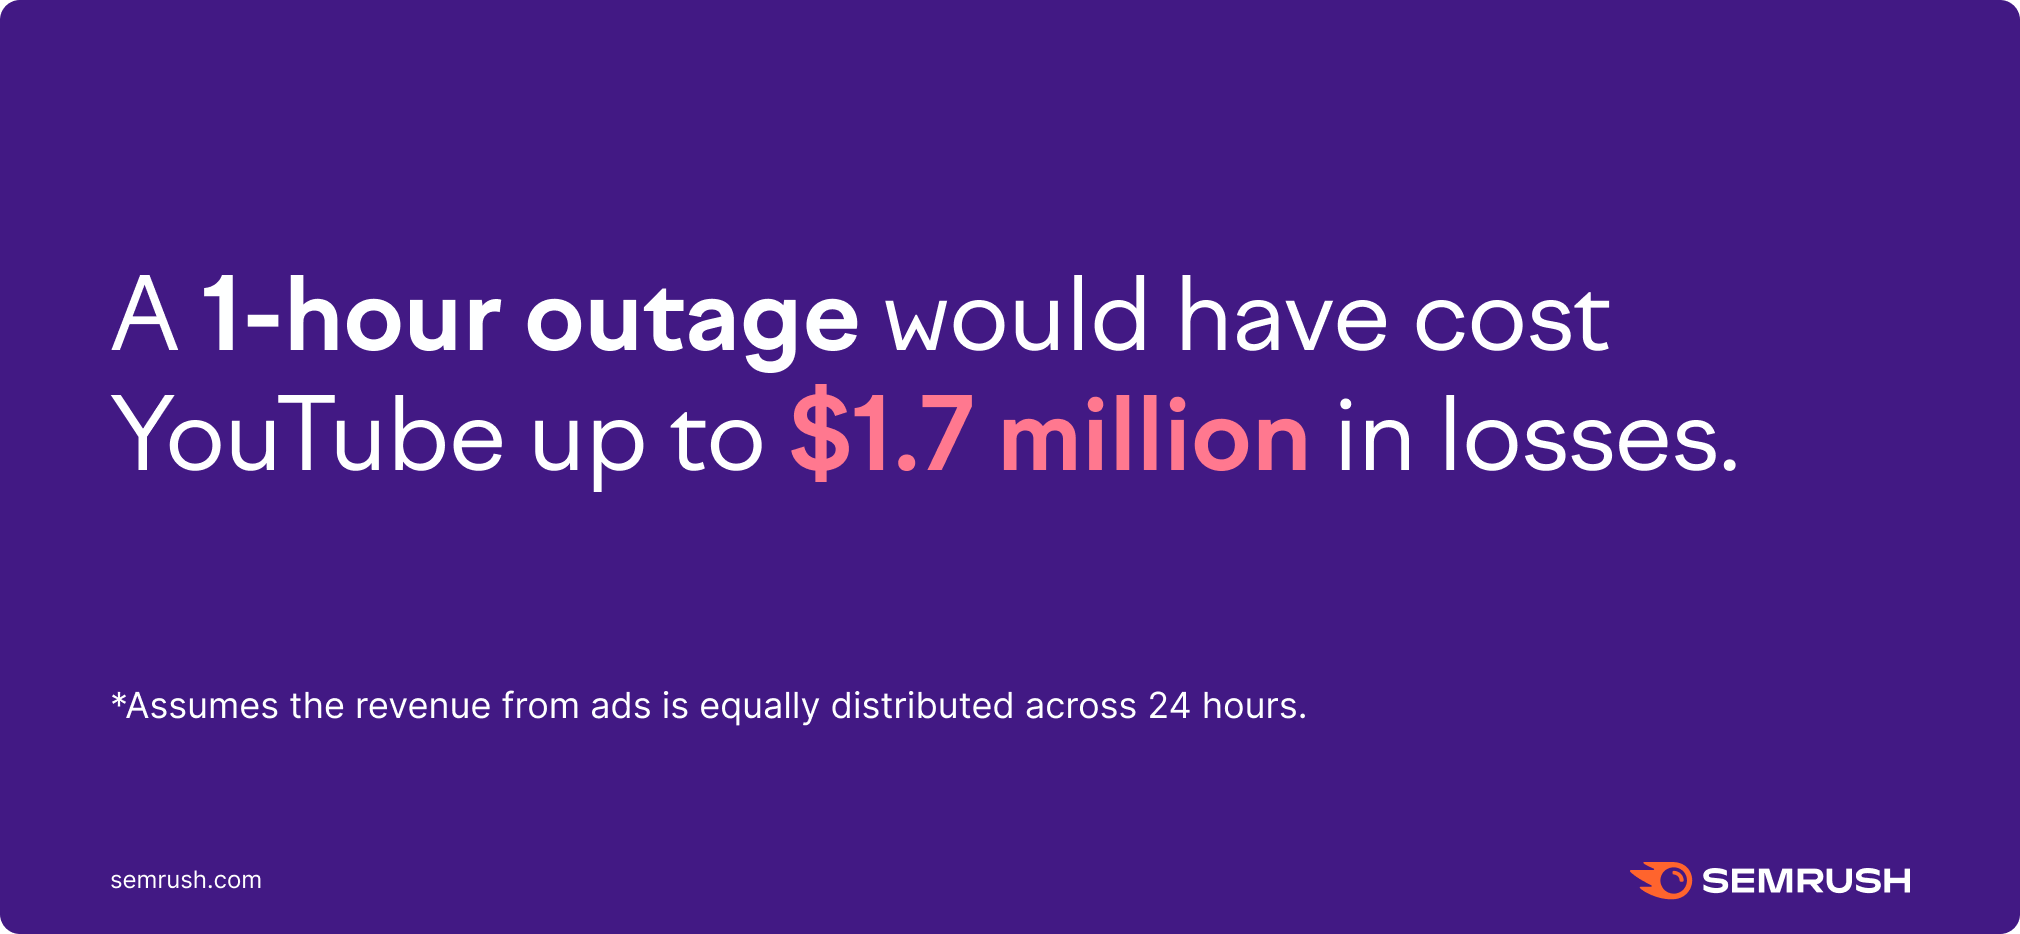 1-hour outage cost for YouTube